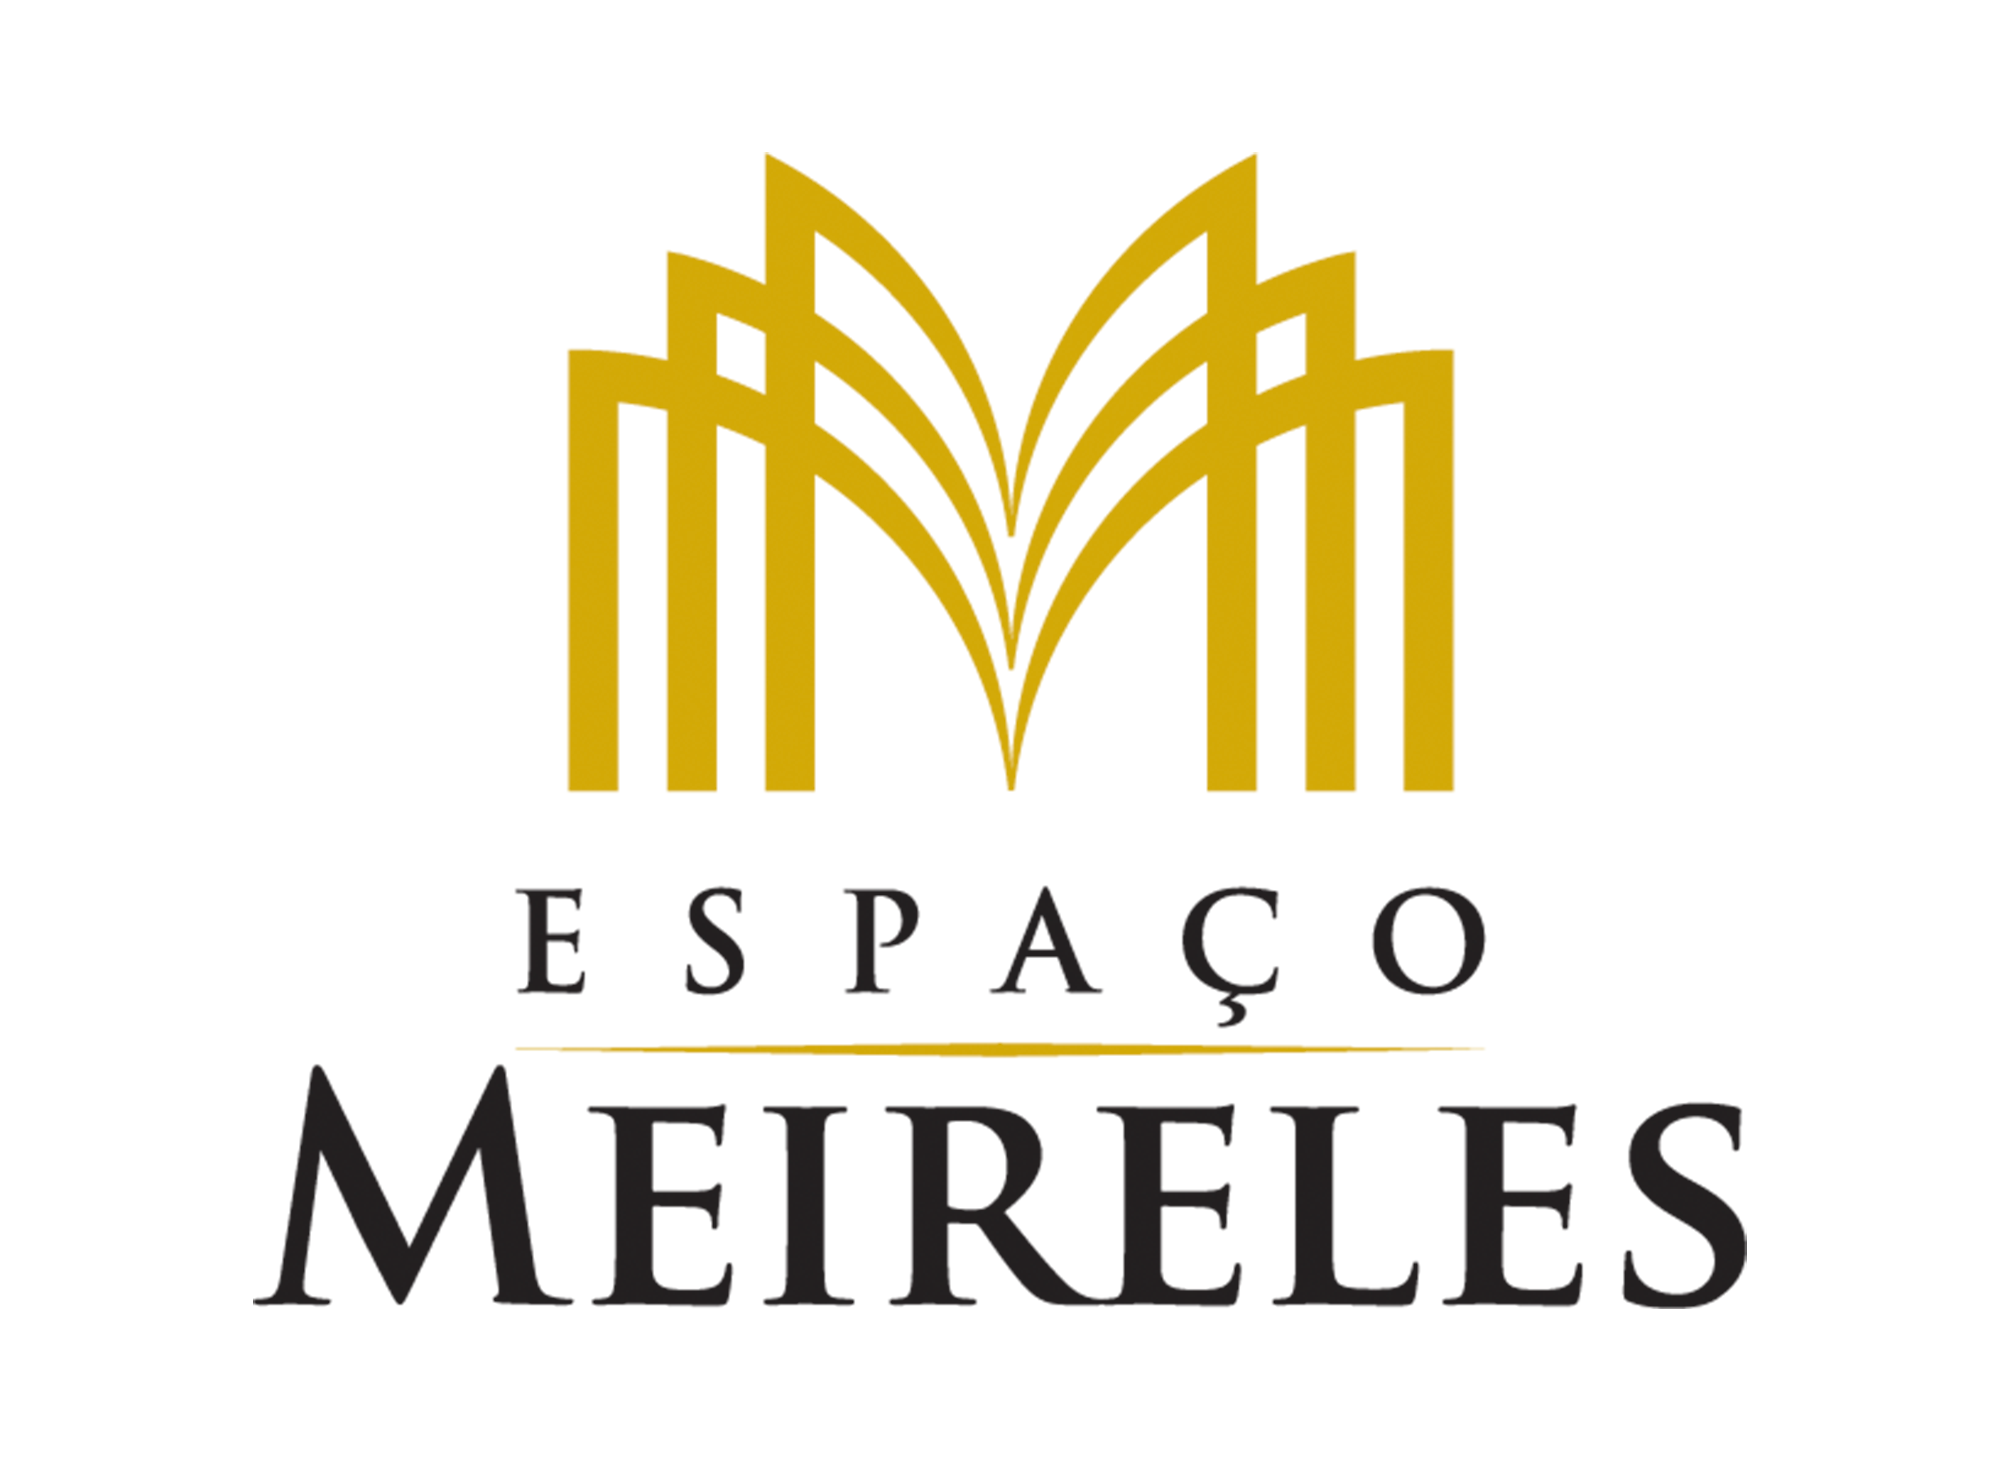 espaco-meireles-clientes-agencia-diretriz-digital-marketing-fortaleza